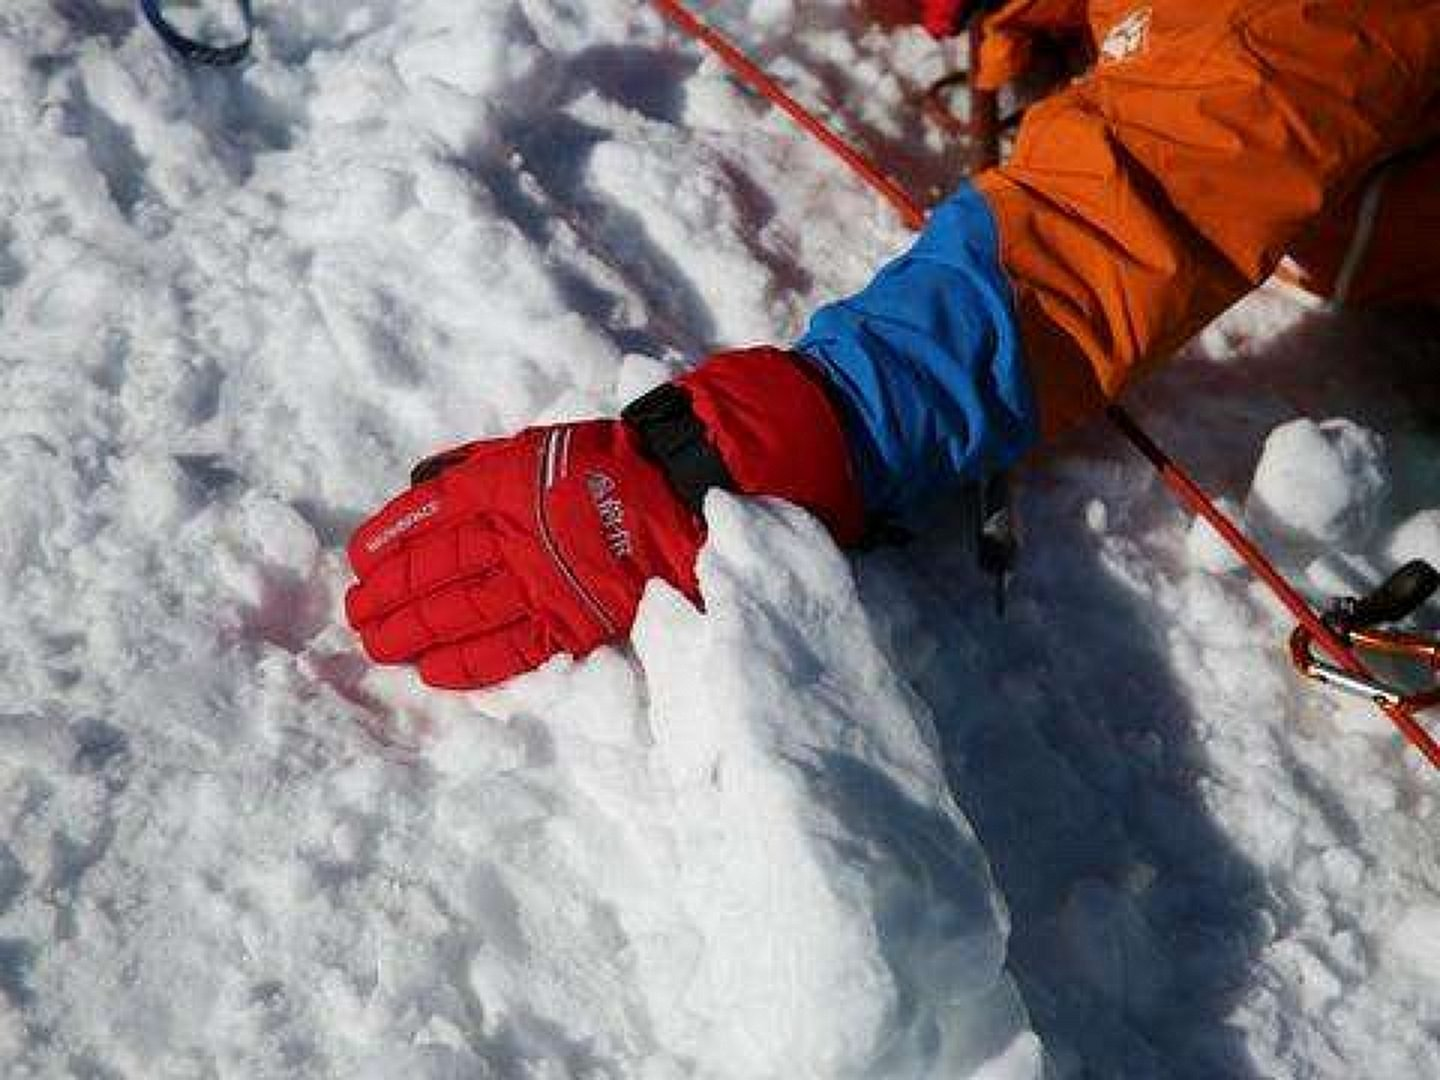 electric gloves in the snow